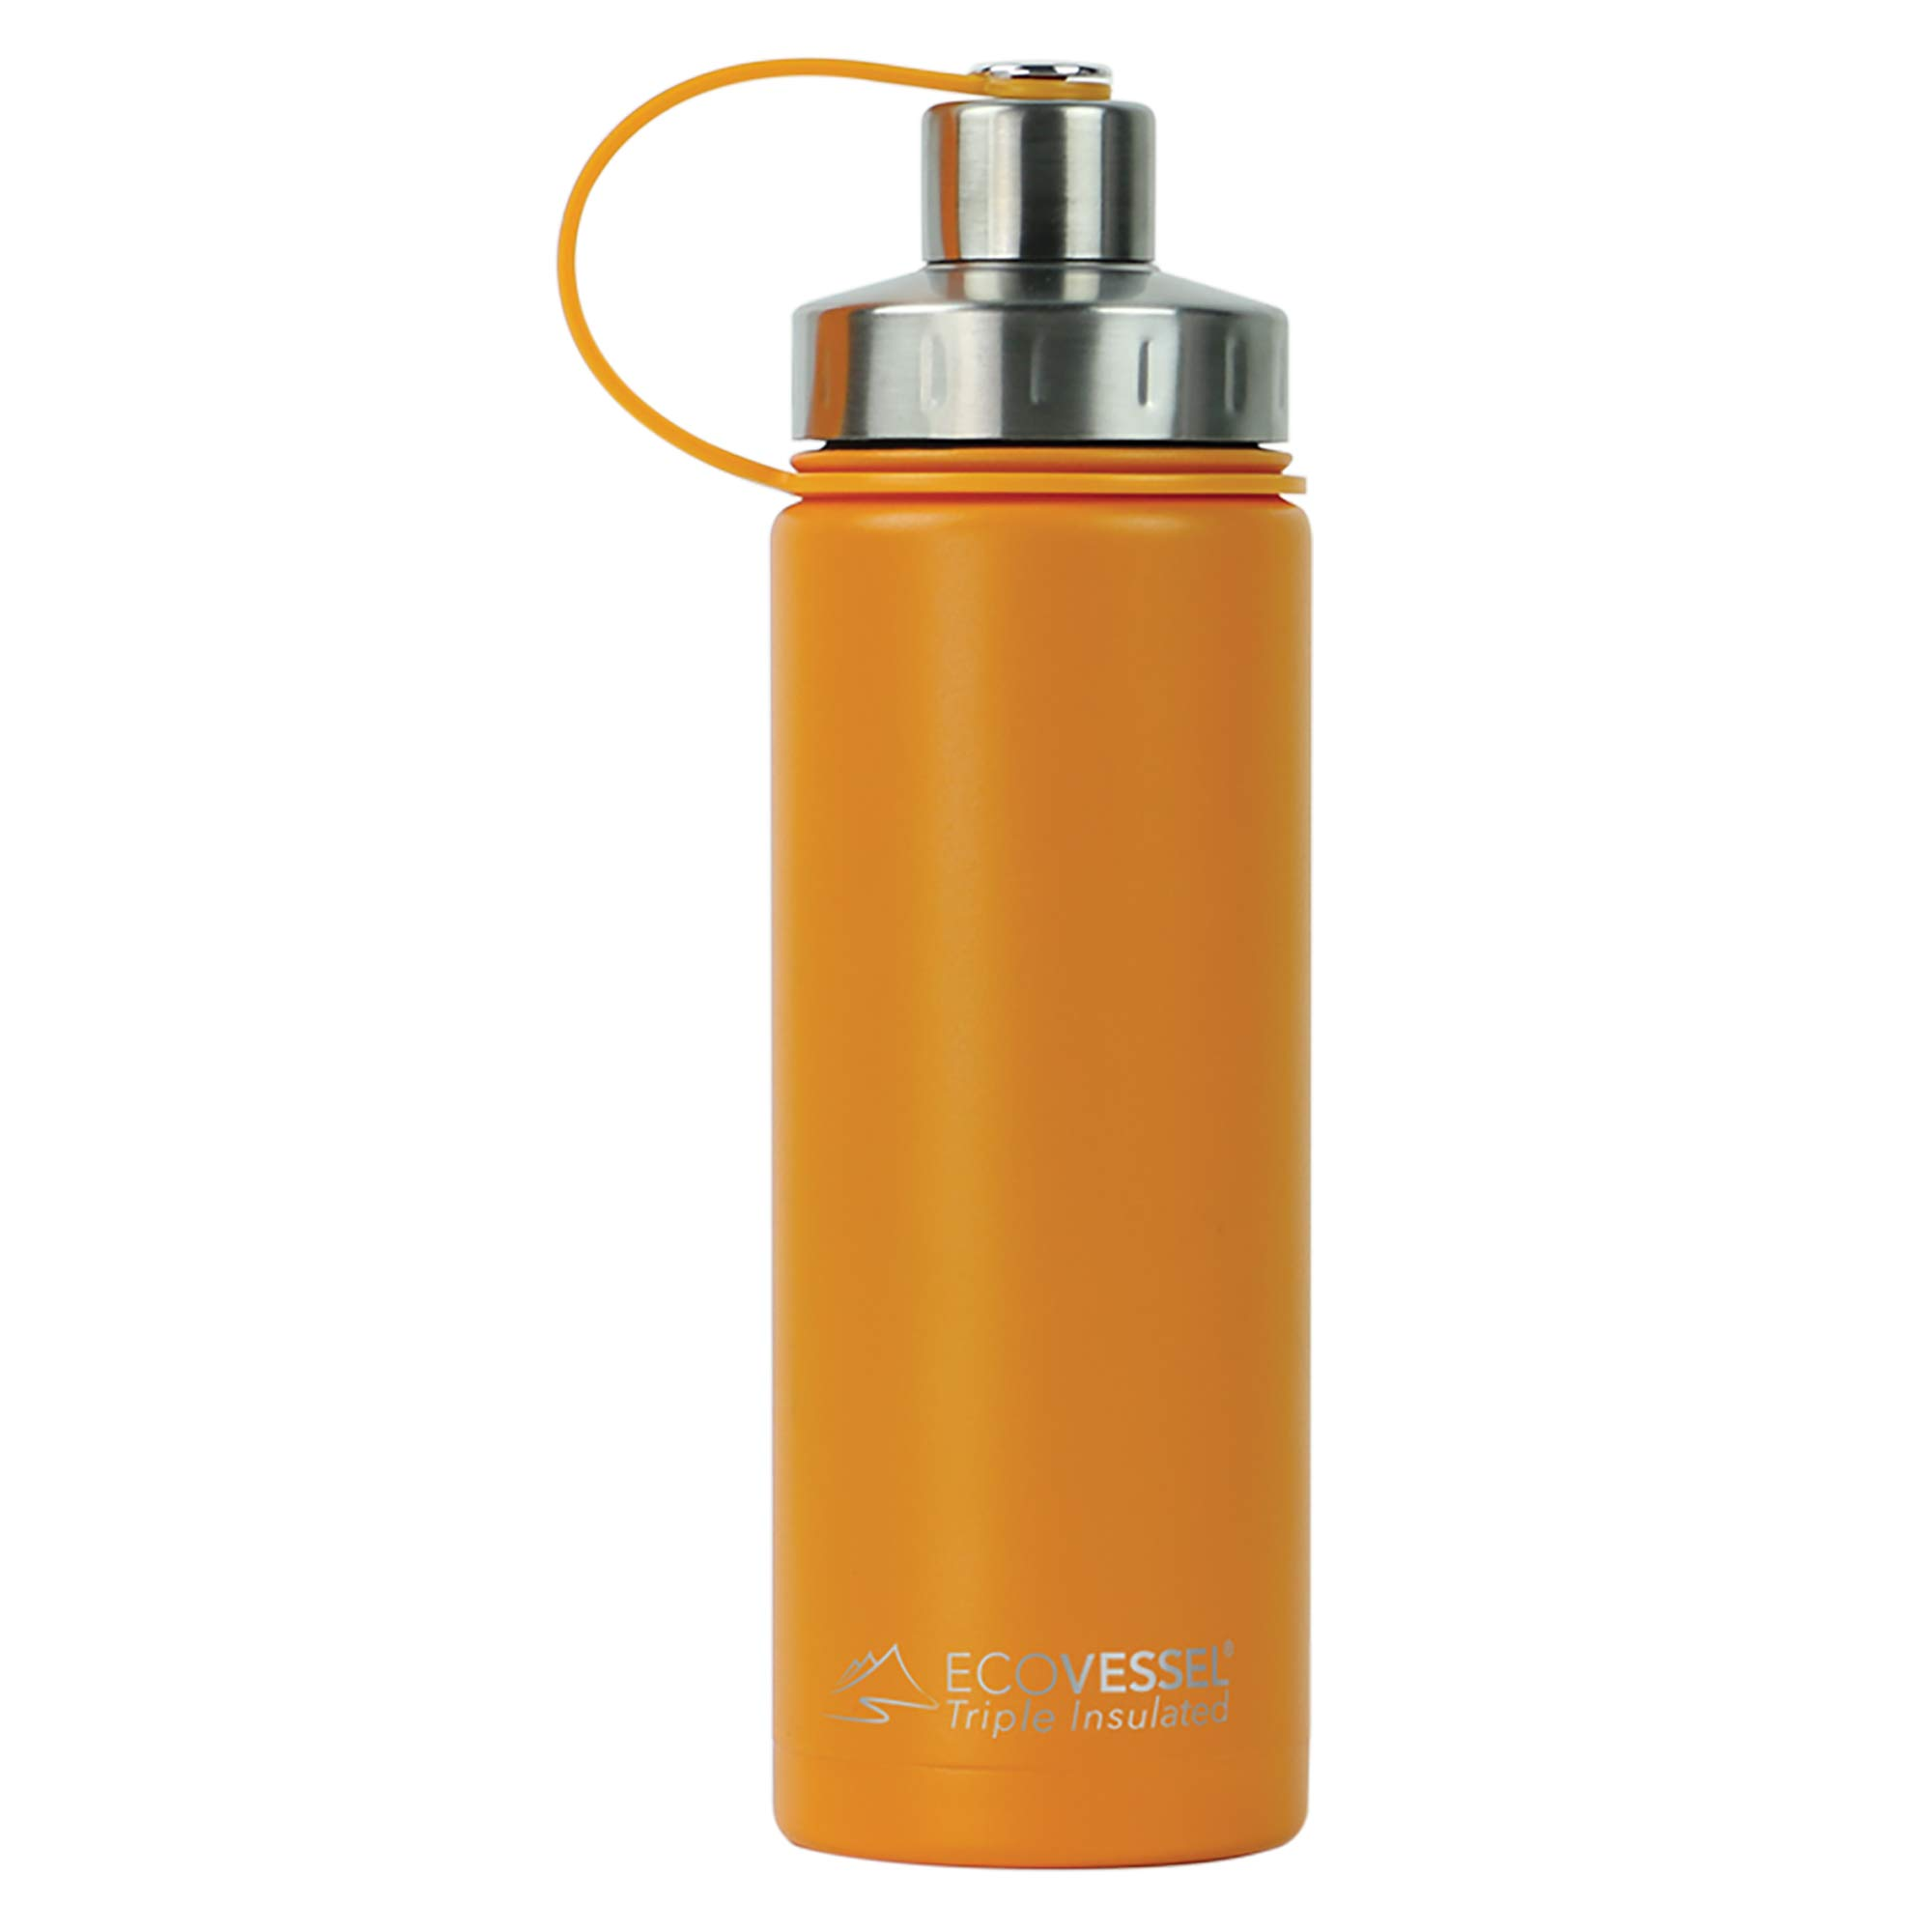 EcoVessel BOULDER TriMax Vacuum Insulated Stainless Steel Water Bottle with Versatile Stainless Steel Top and Tea, Fruit, Ice Strainer - 20 ounce - Mystic Mango